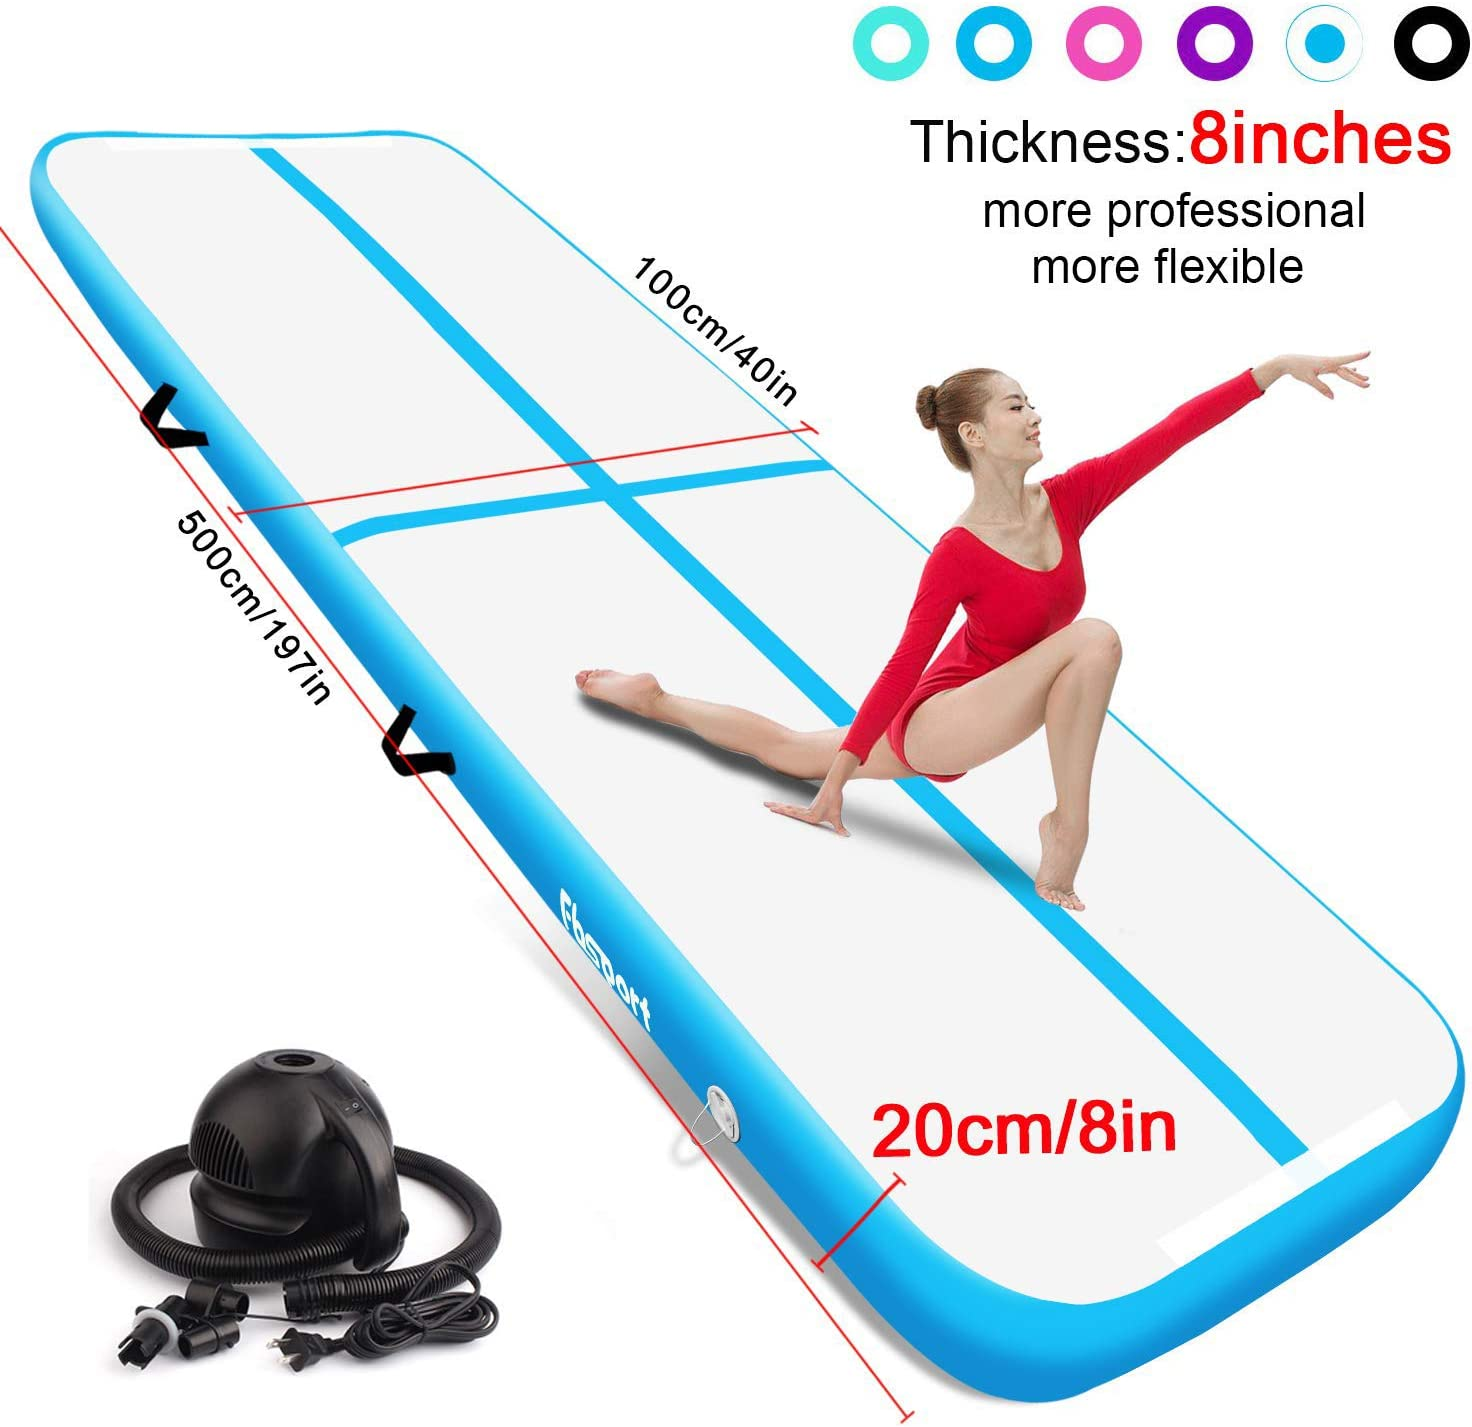 Home Floor FBSPORT 10//20CM thick airtrack Tumbling mat include 5 in 1 Inflatable Training Mats Set Length 1m//3m//4m//5m//6m//7m//8m Tumbling mat Tumbling,Parkour Inflatable Gymnastics airtrack with Electric Air Pump for Practice Gymnastics